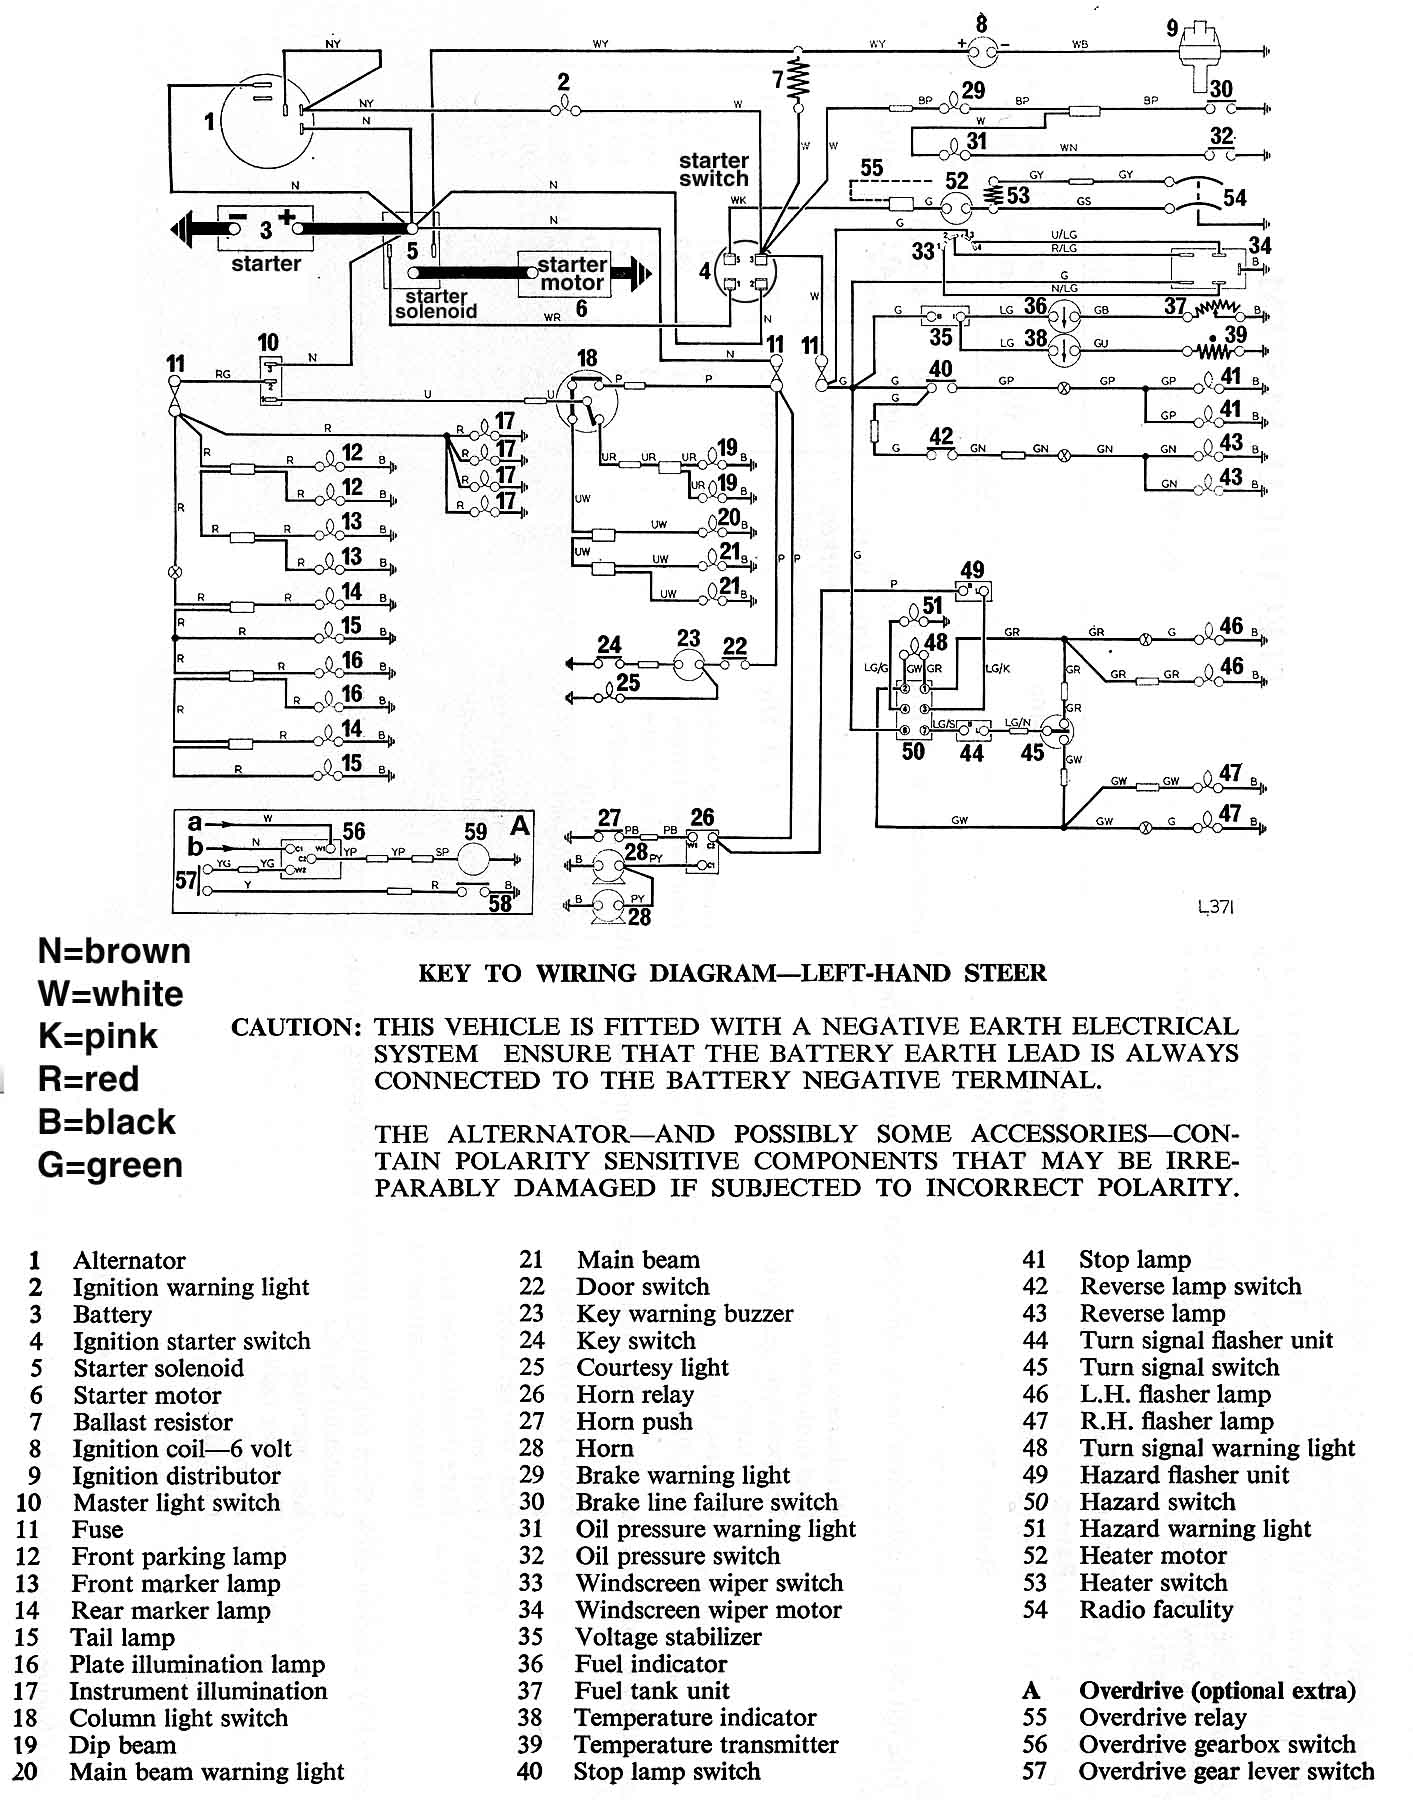 MKIVwire mk4 wiring diagram mk4 tdi wiring diagram \u2022 wiring diagrams j  at webbmarketing.co